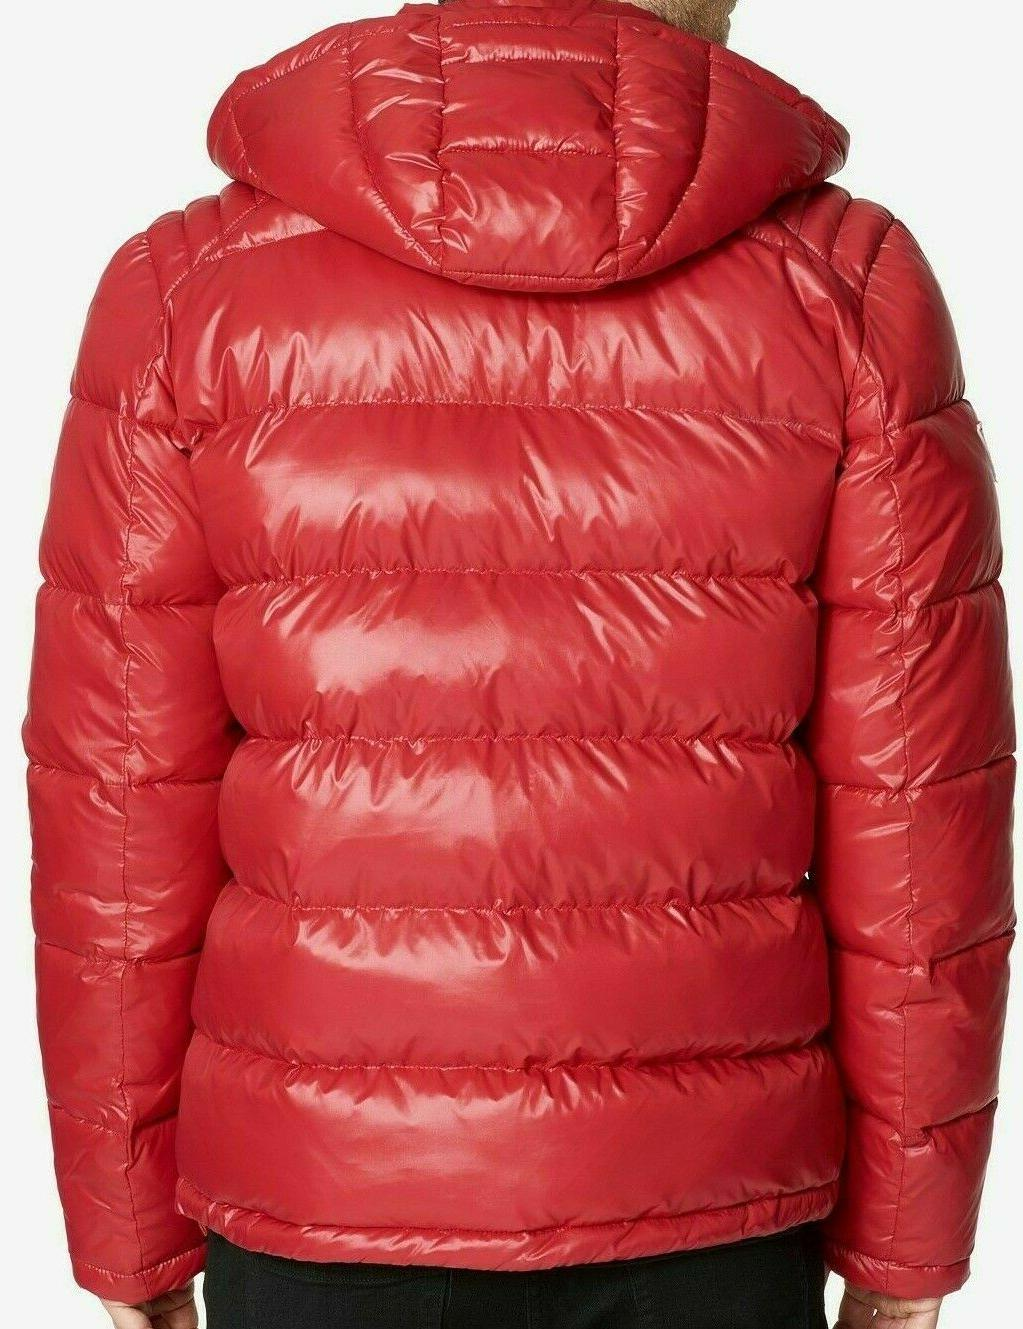 GUESS Puffer Removable Hood - NEW With